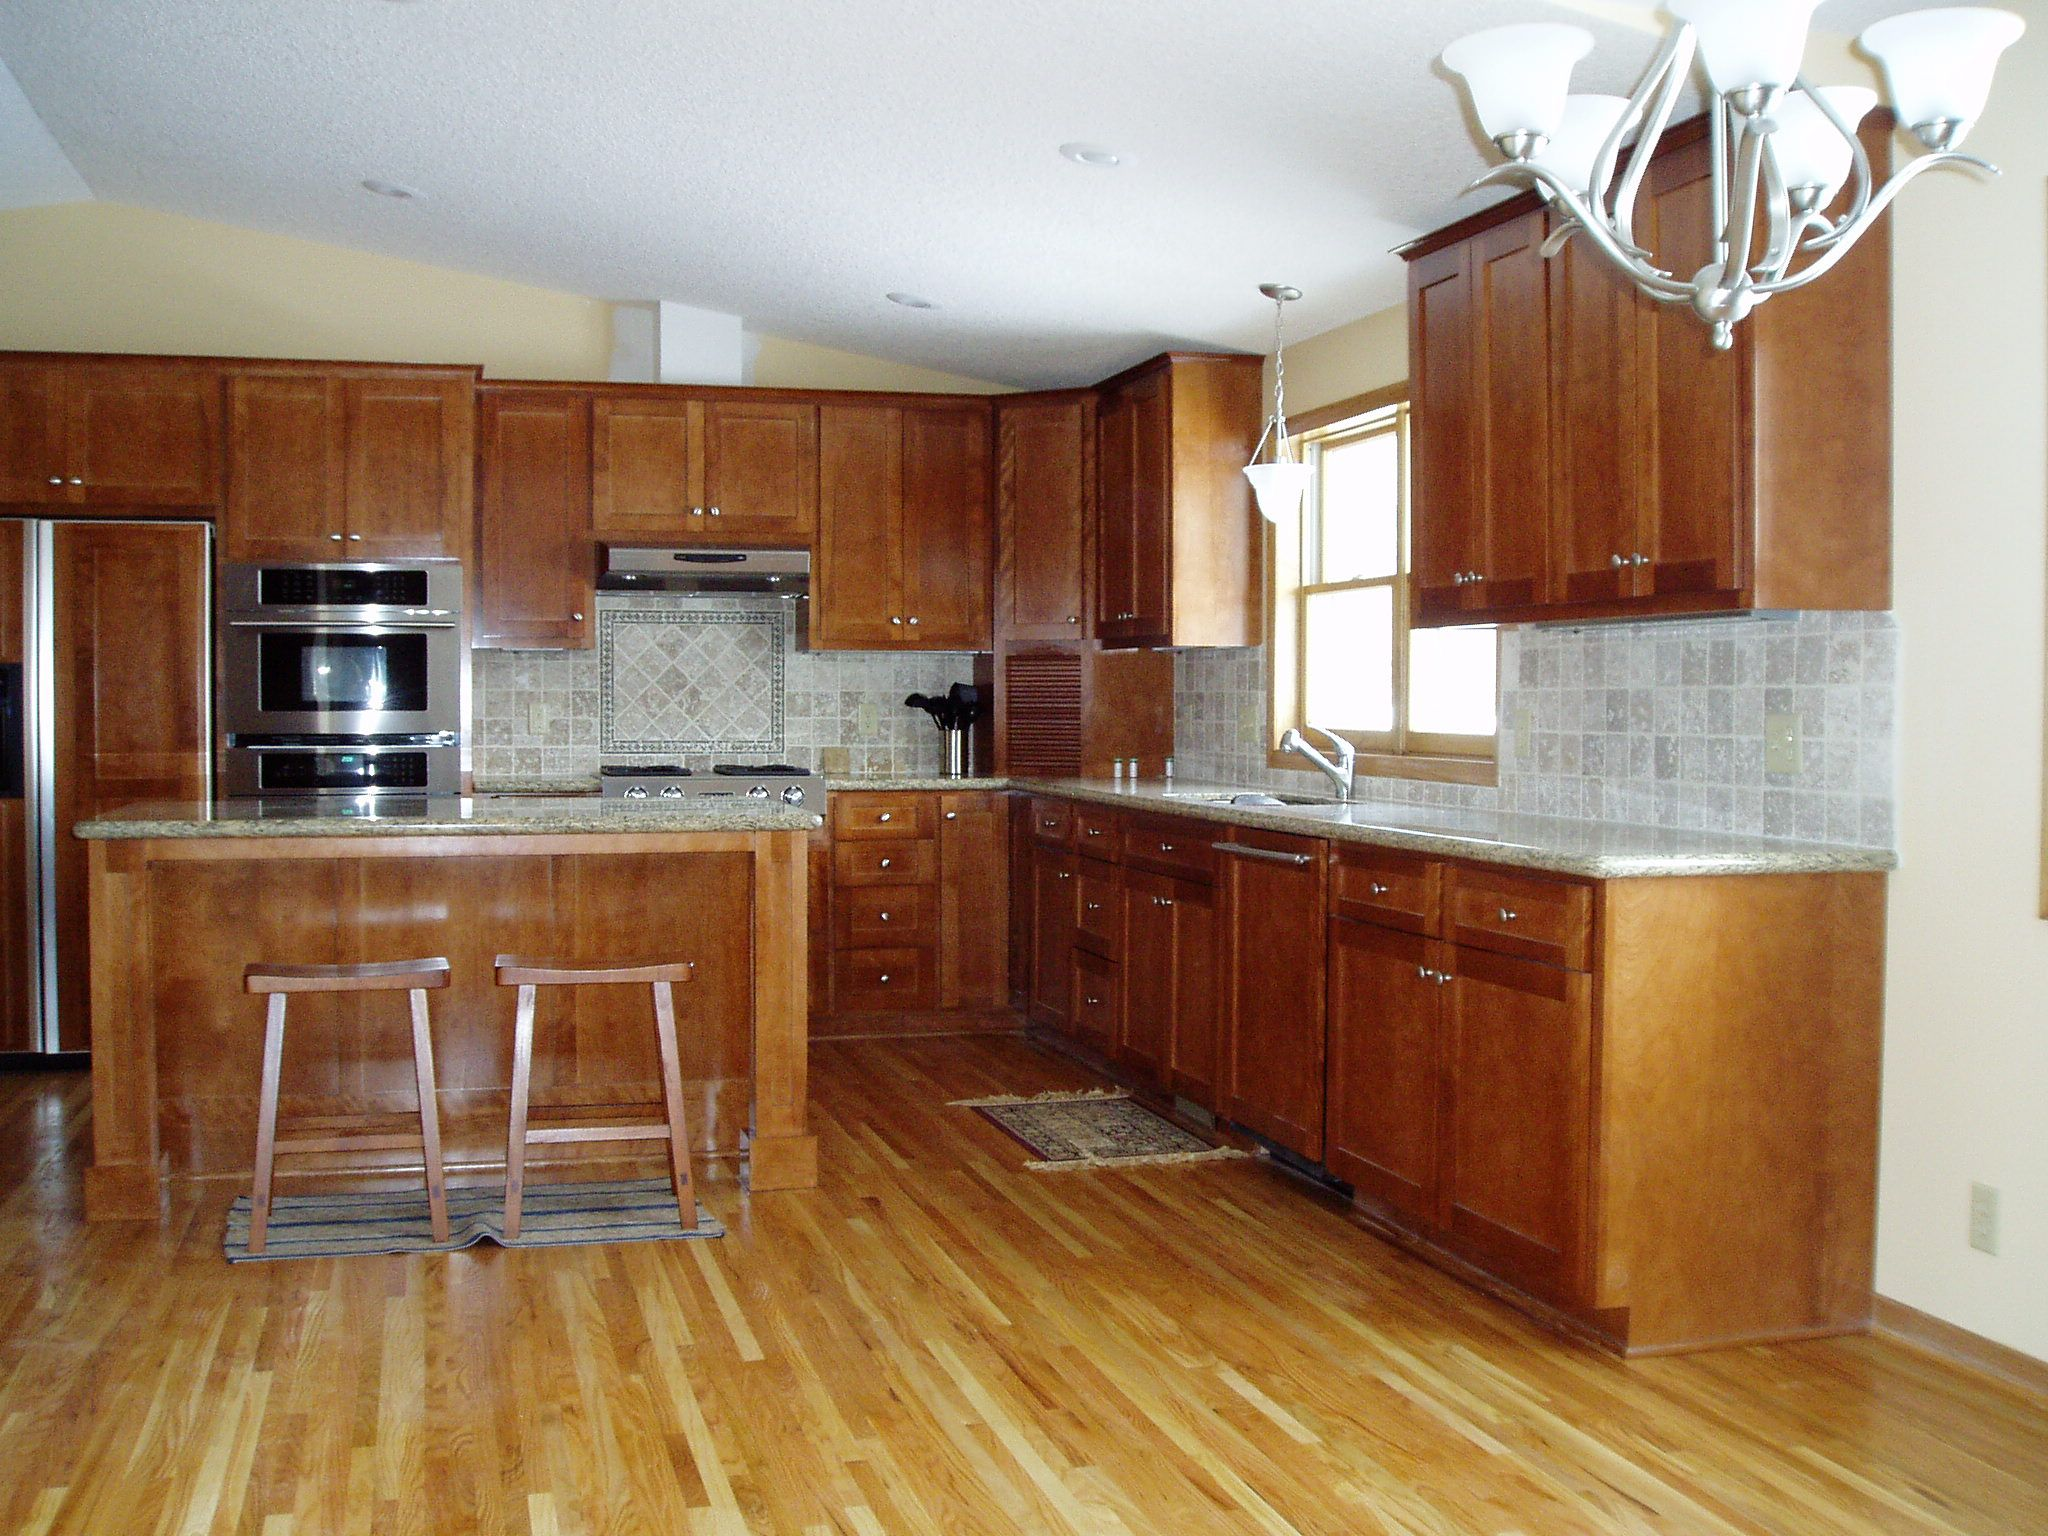 Wood Flooring That Goes Well With Honey Oak Cabinets